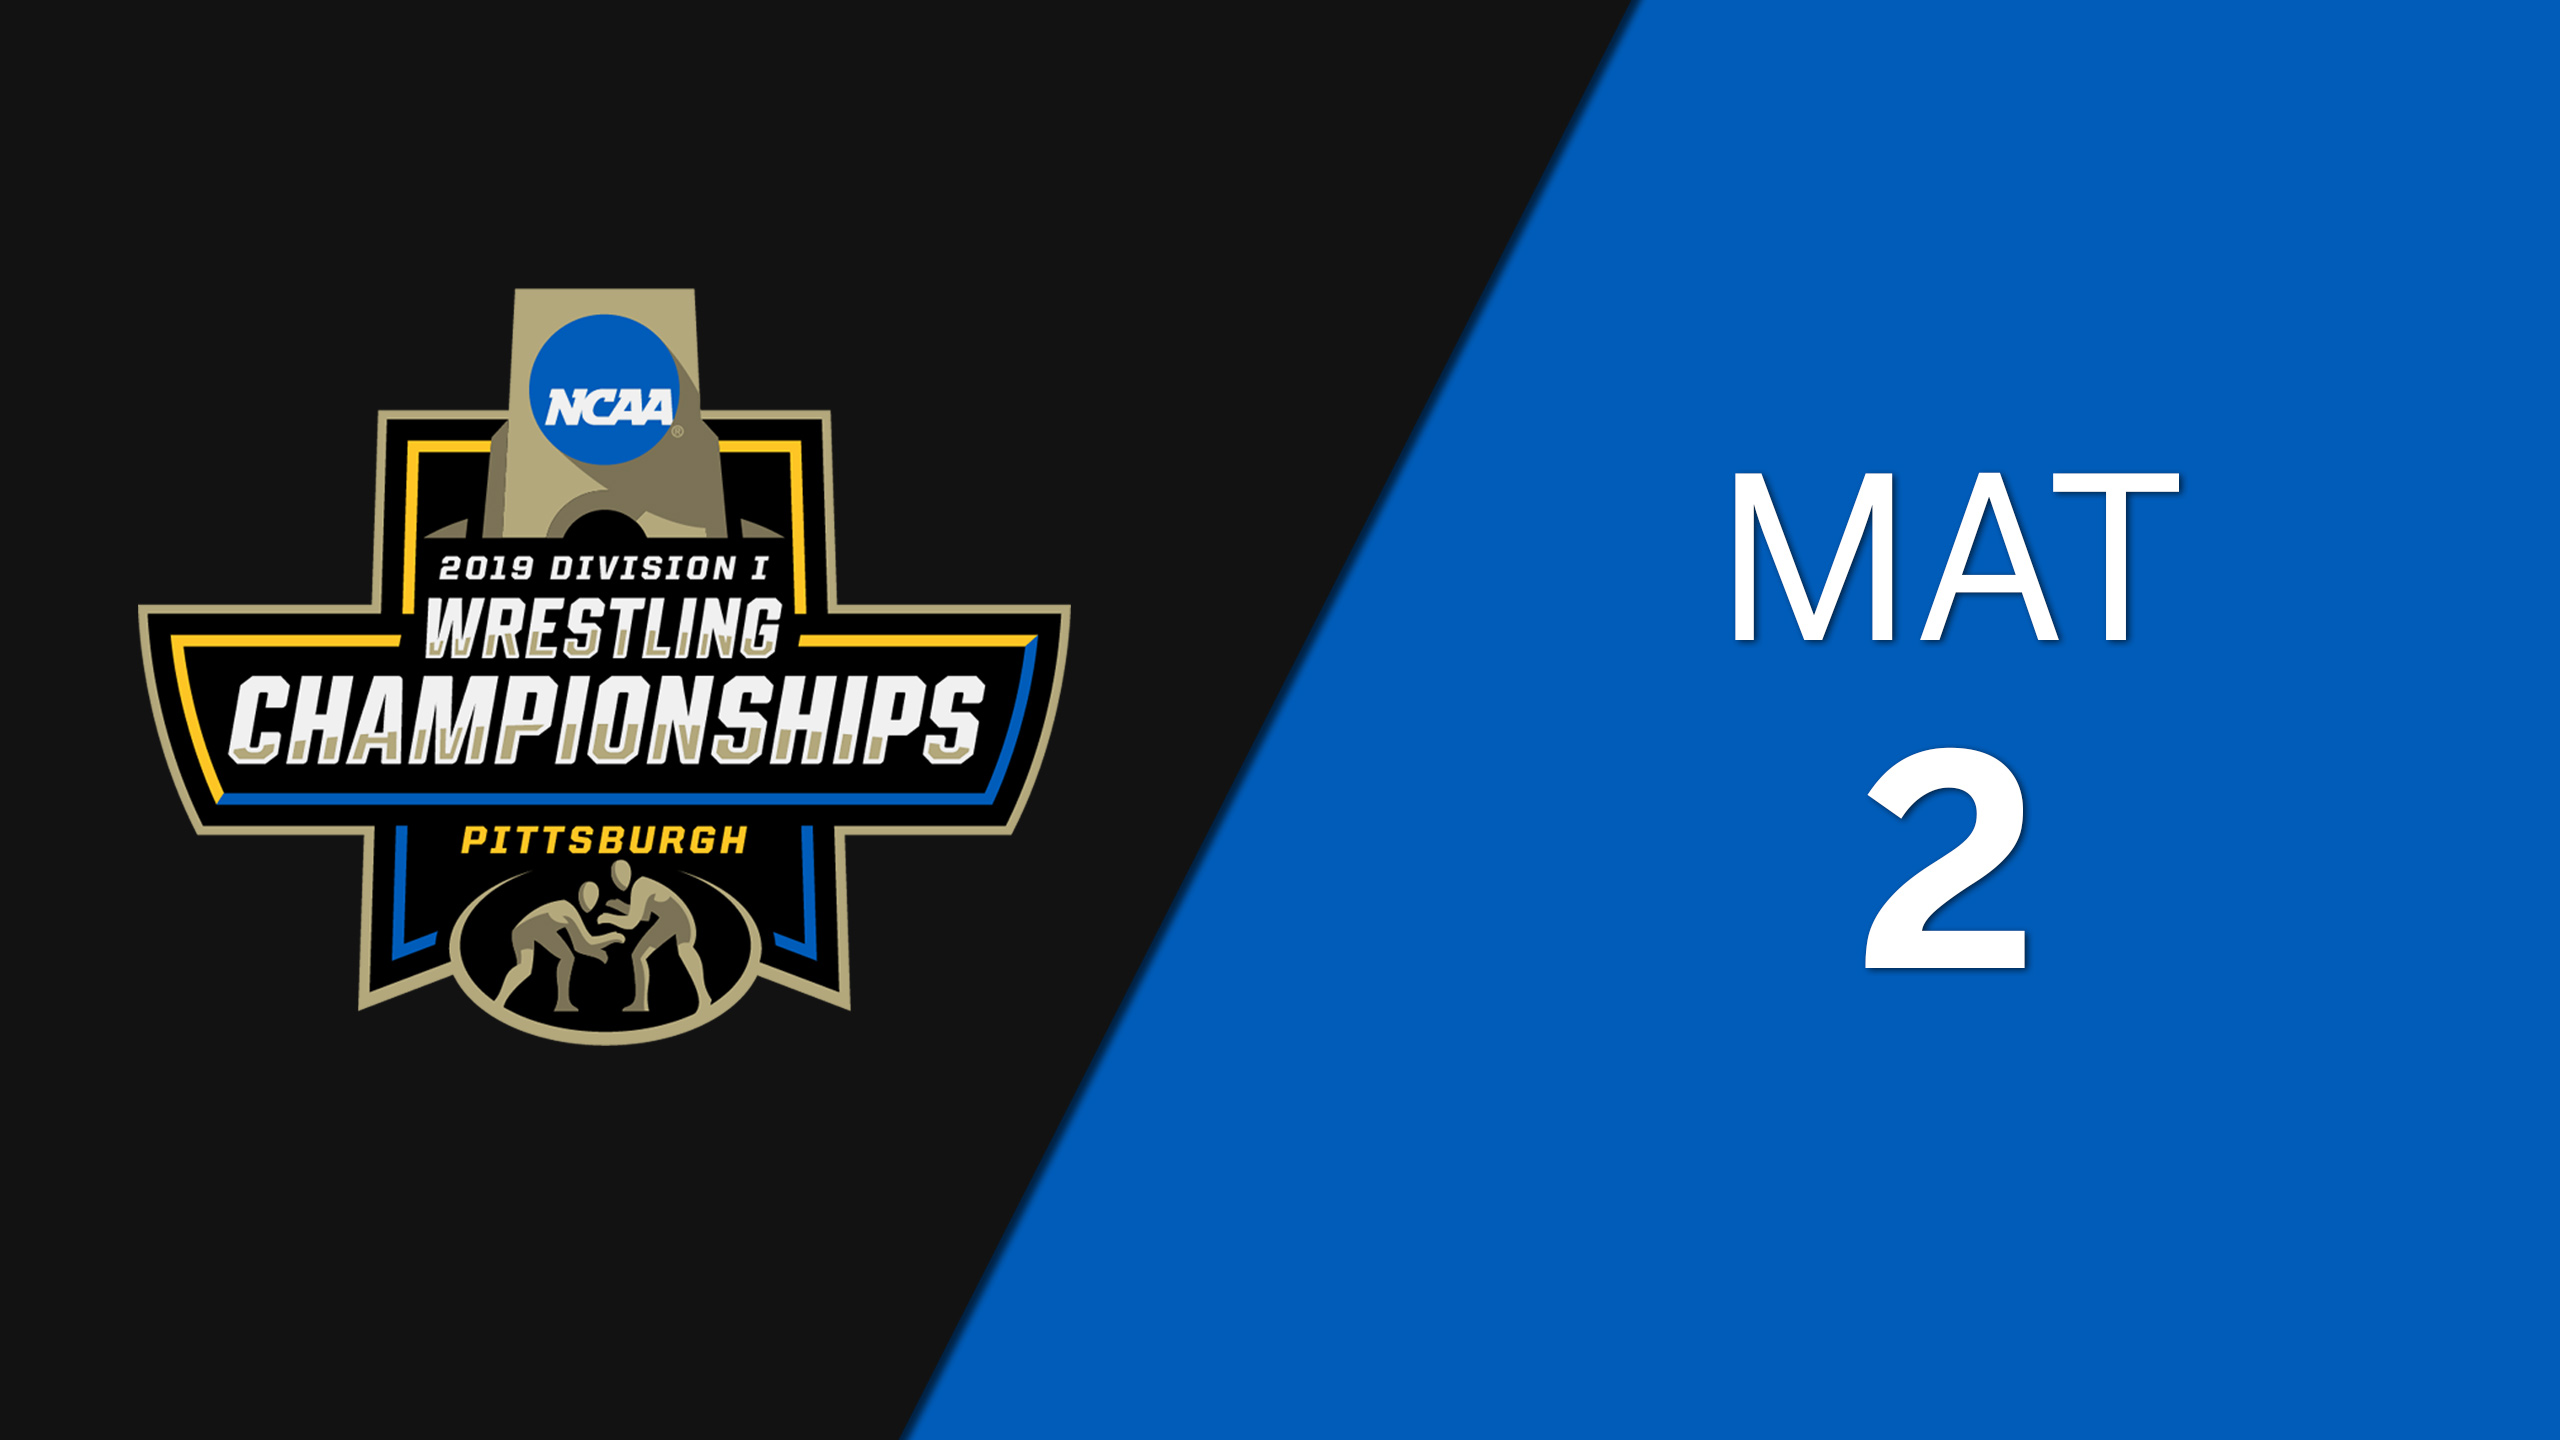 NCAA Wrestling Championship (Mat 2, Medal Round)